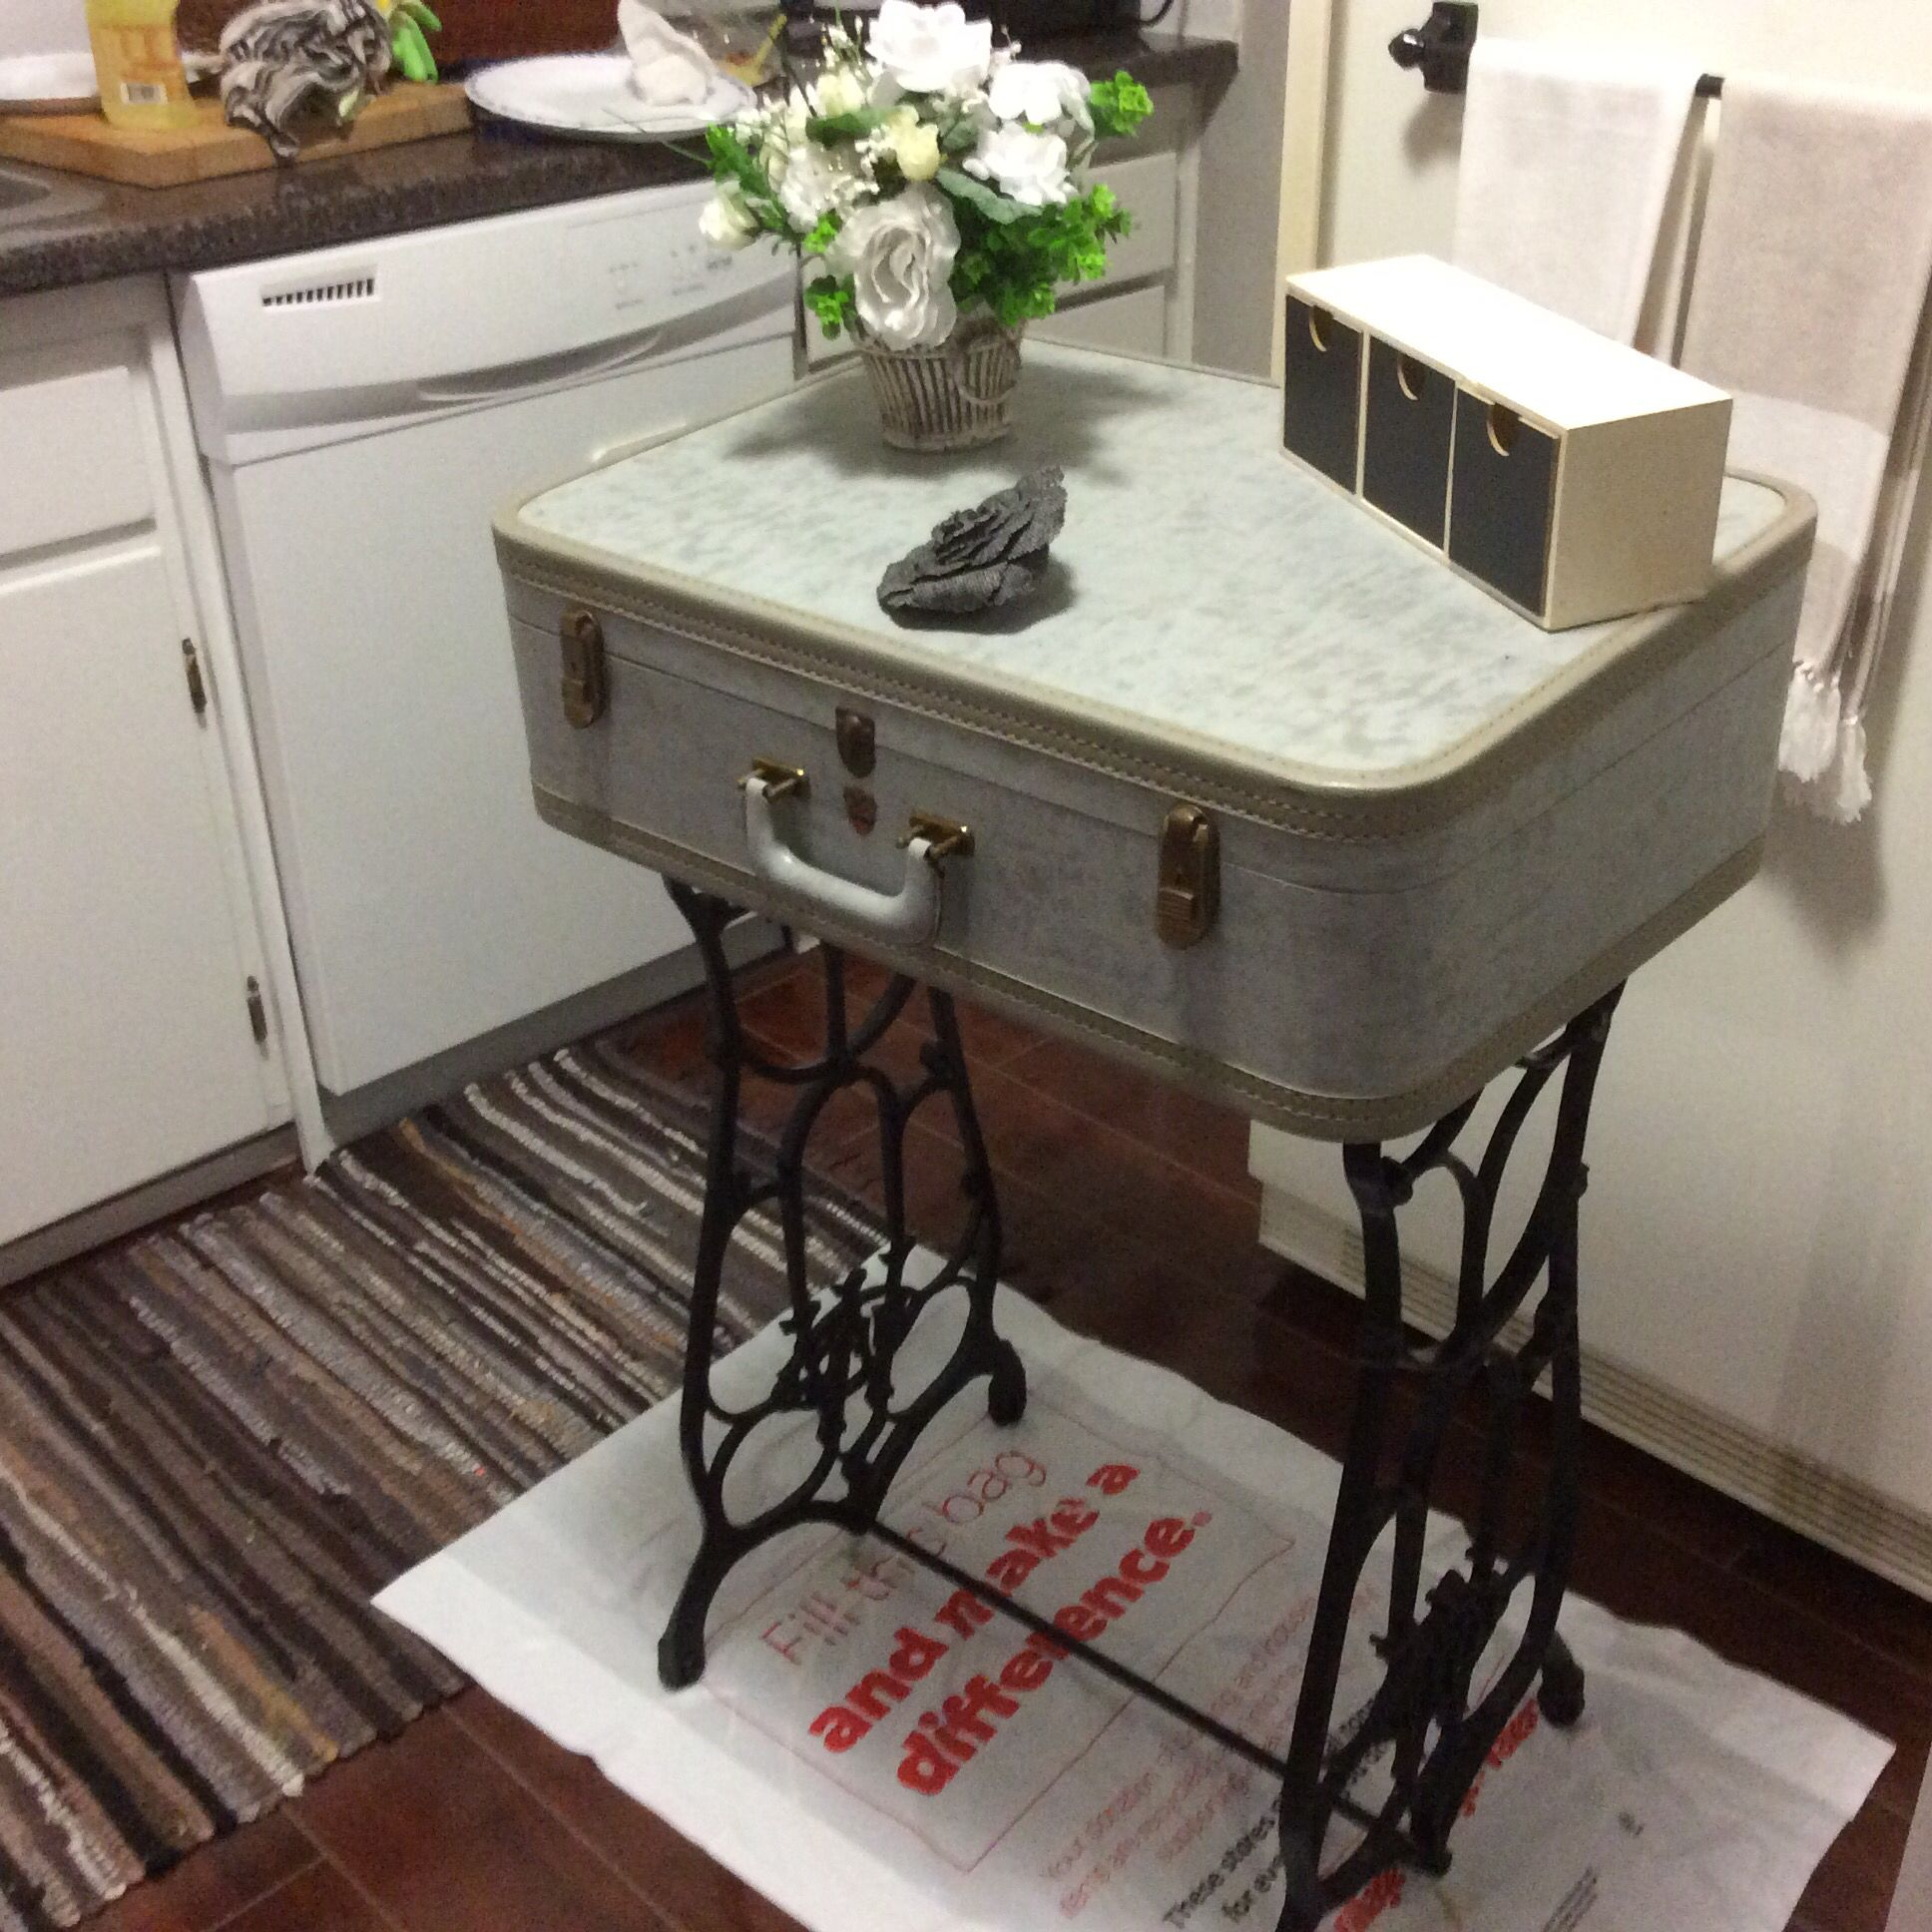 DIY Repurposed Furniture. Quirky And Functional. Suitcase